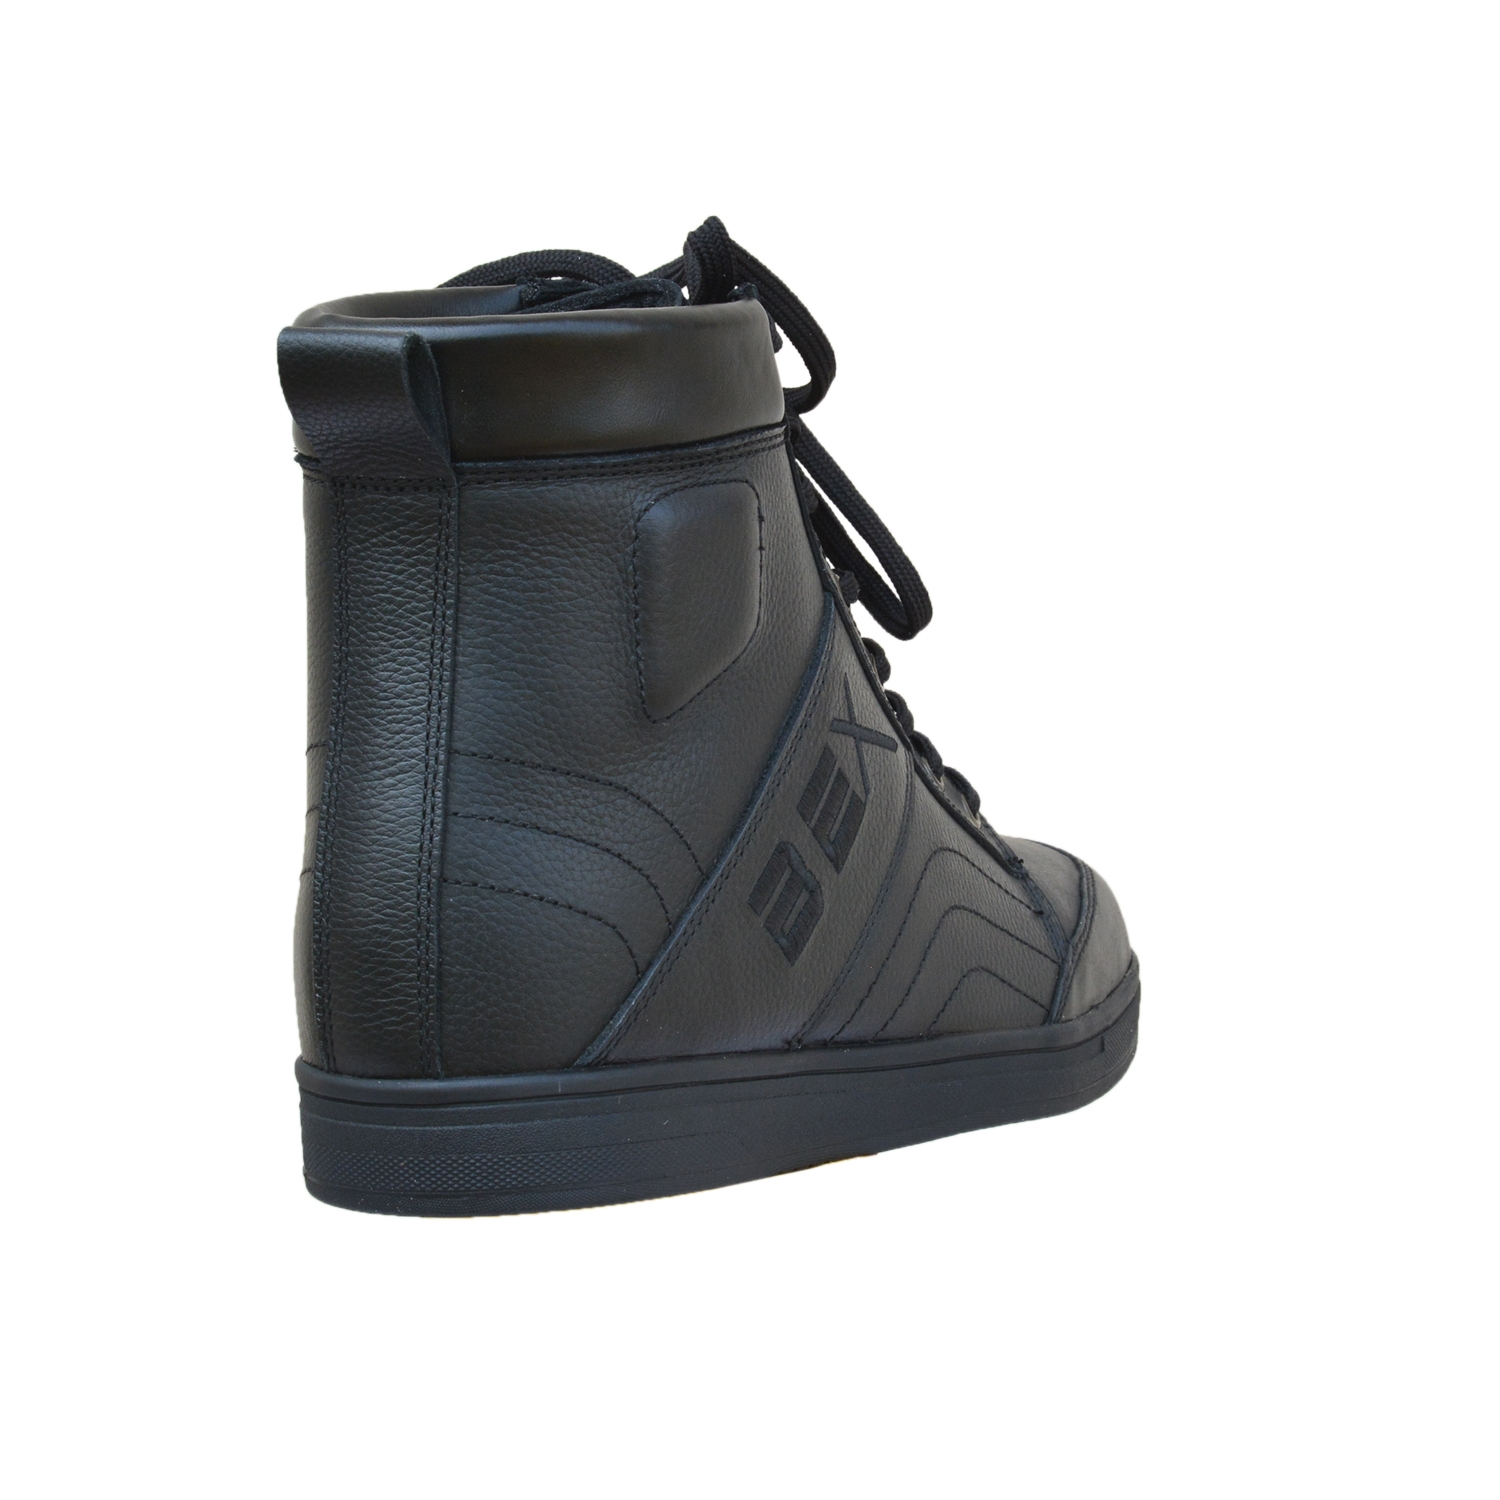 Urban Boots back